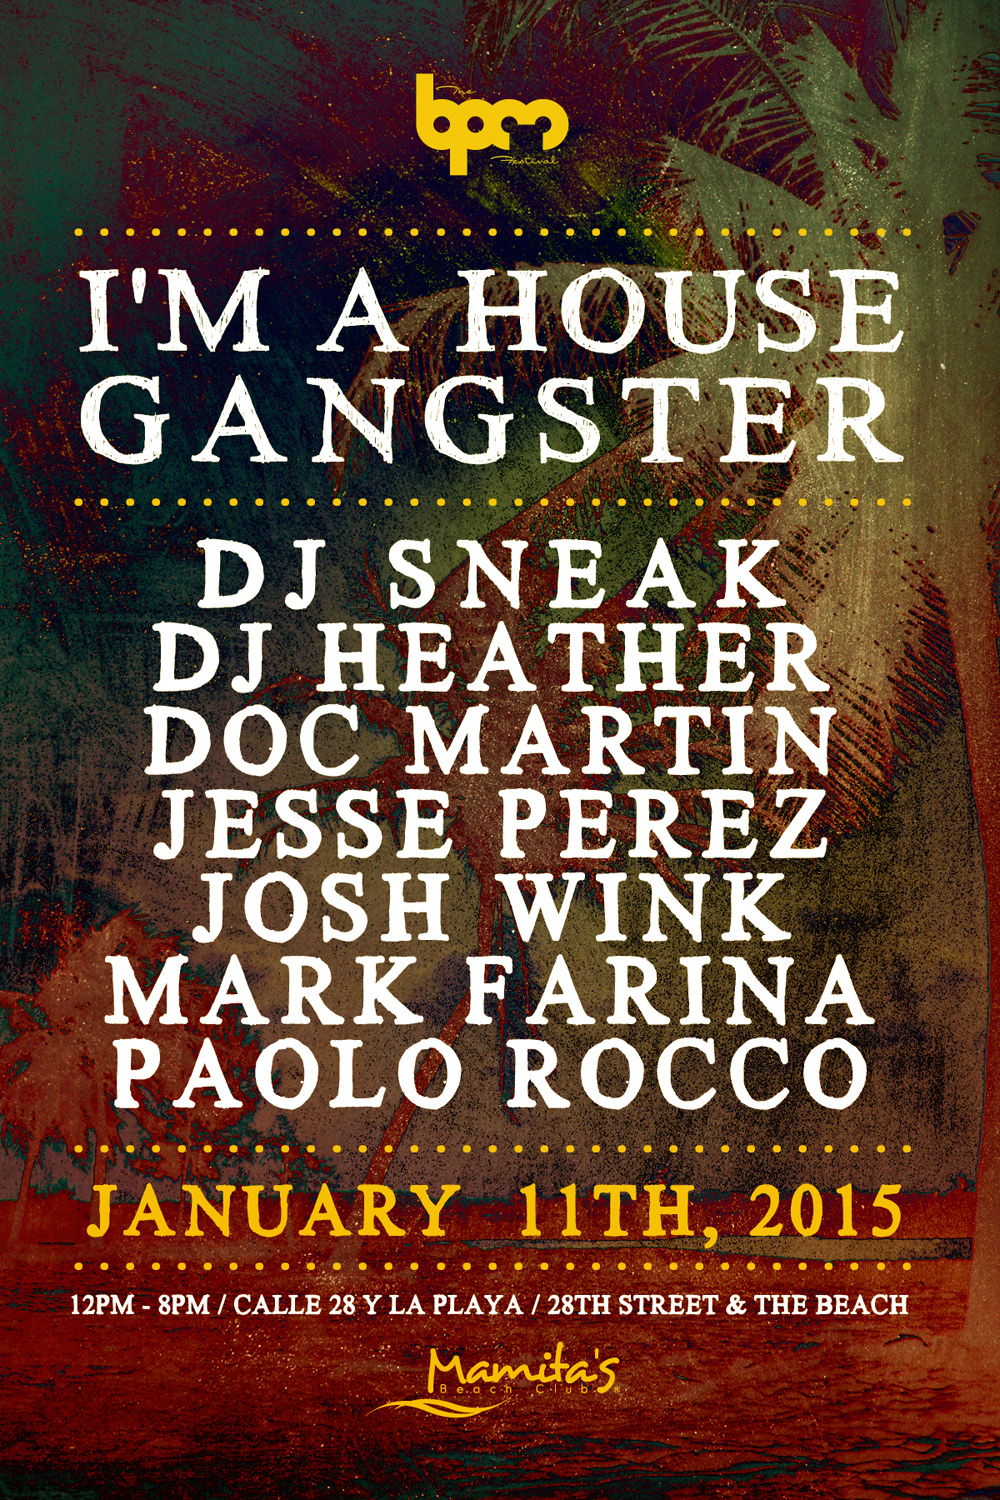 I'm A House Gangster @ Mamitas Beach Club - BPM 2015